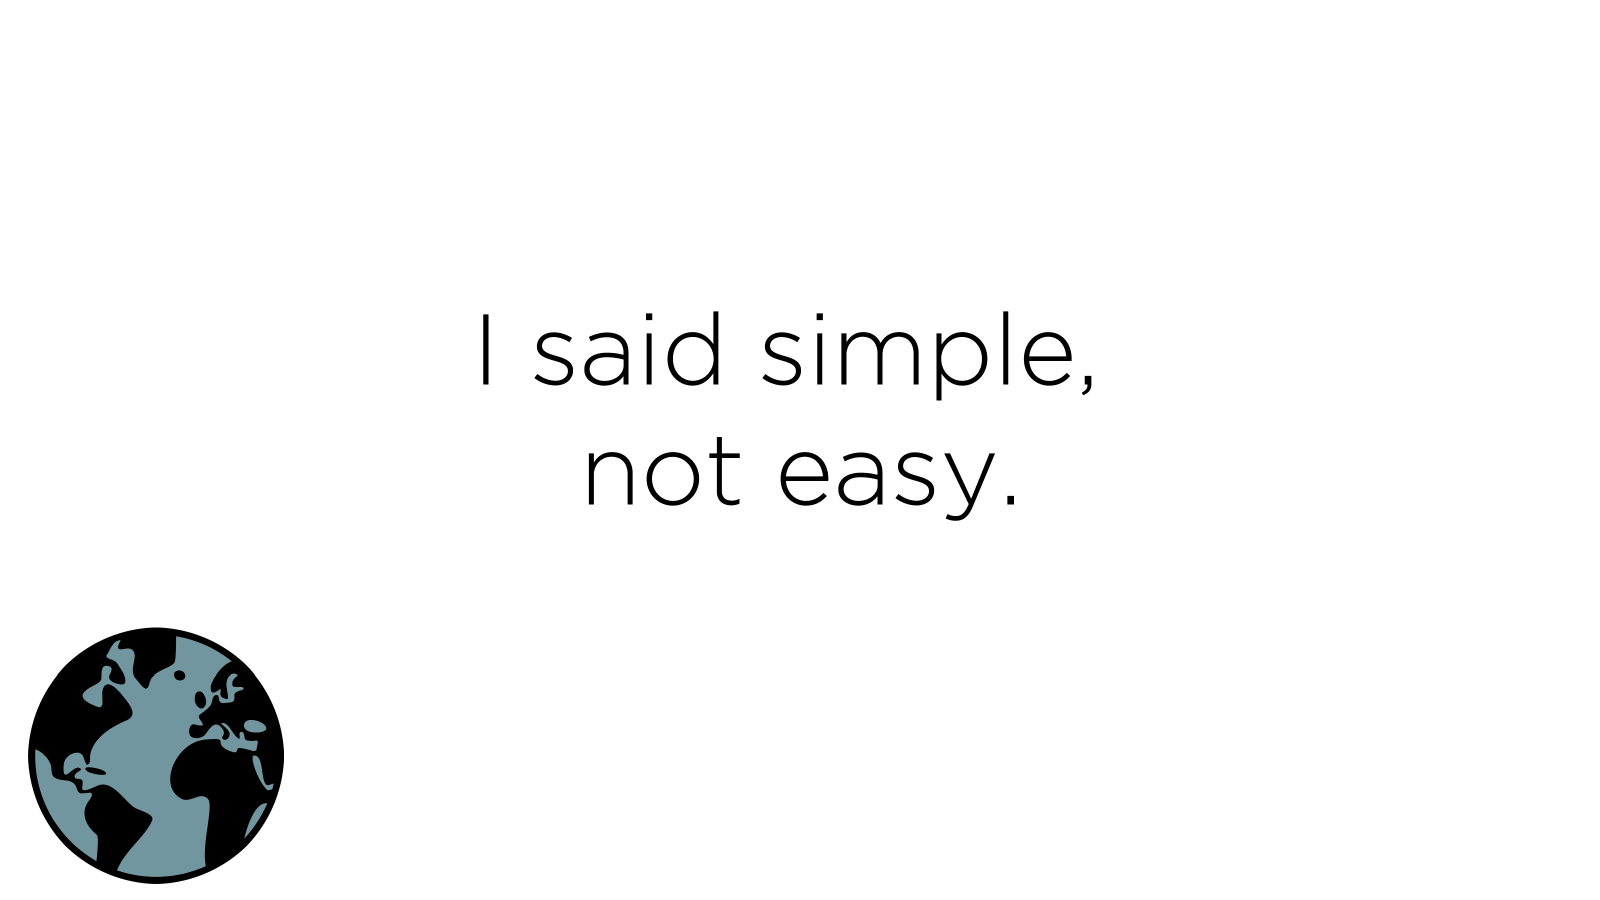 Simple, not easy